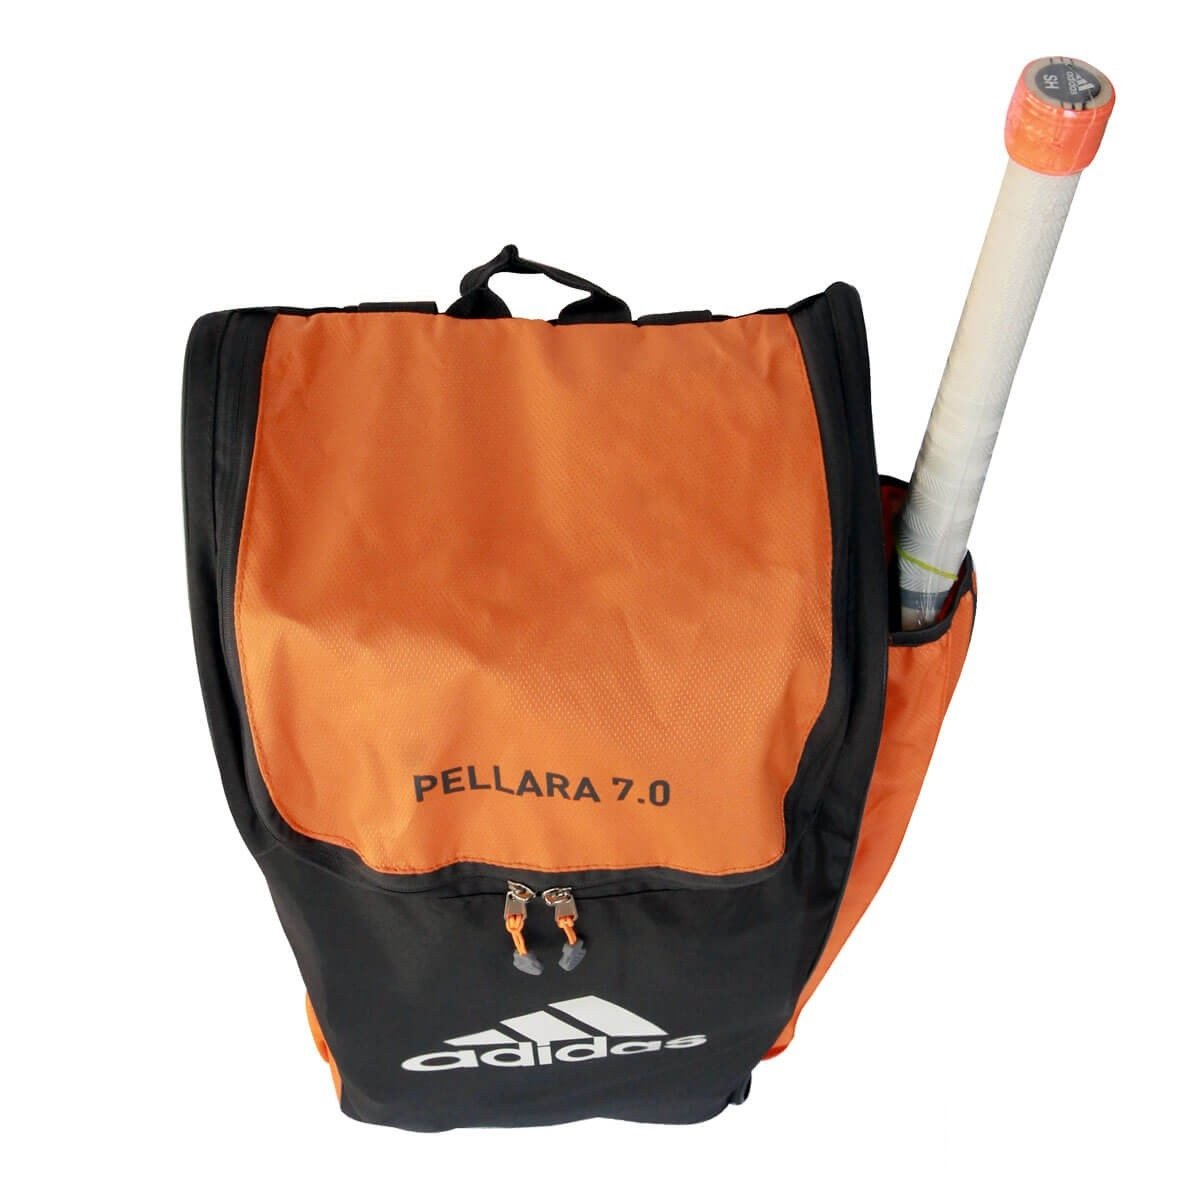 Buy Adidas PELLARA 7.0 DUFFLE CRICKET KIT BAG Online at Low Prices in India  - Amazon.in f17d229a74